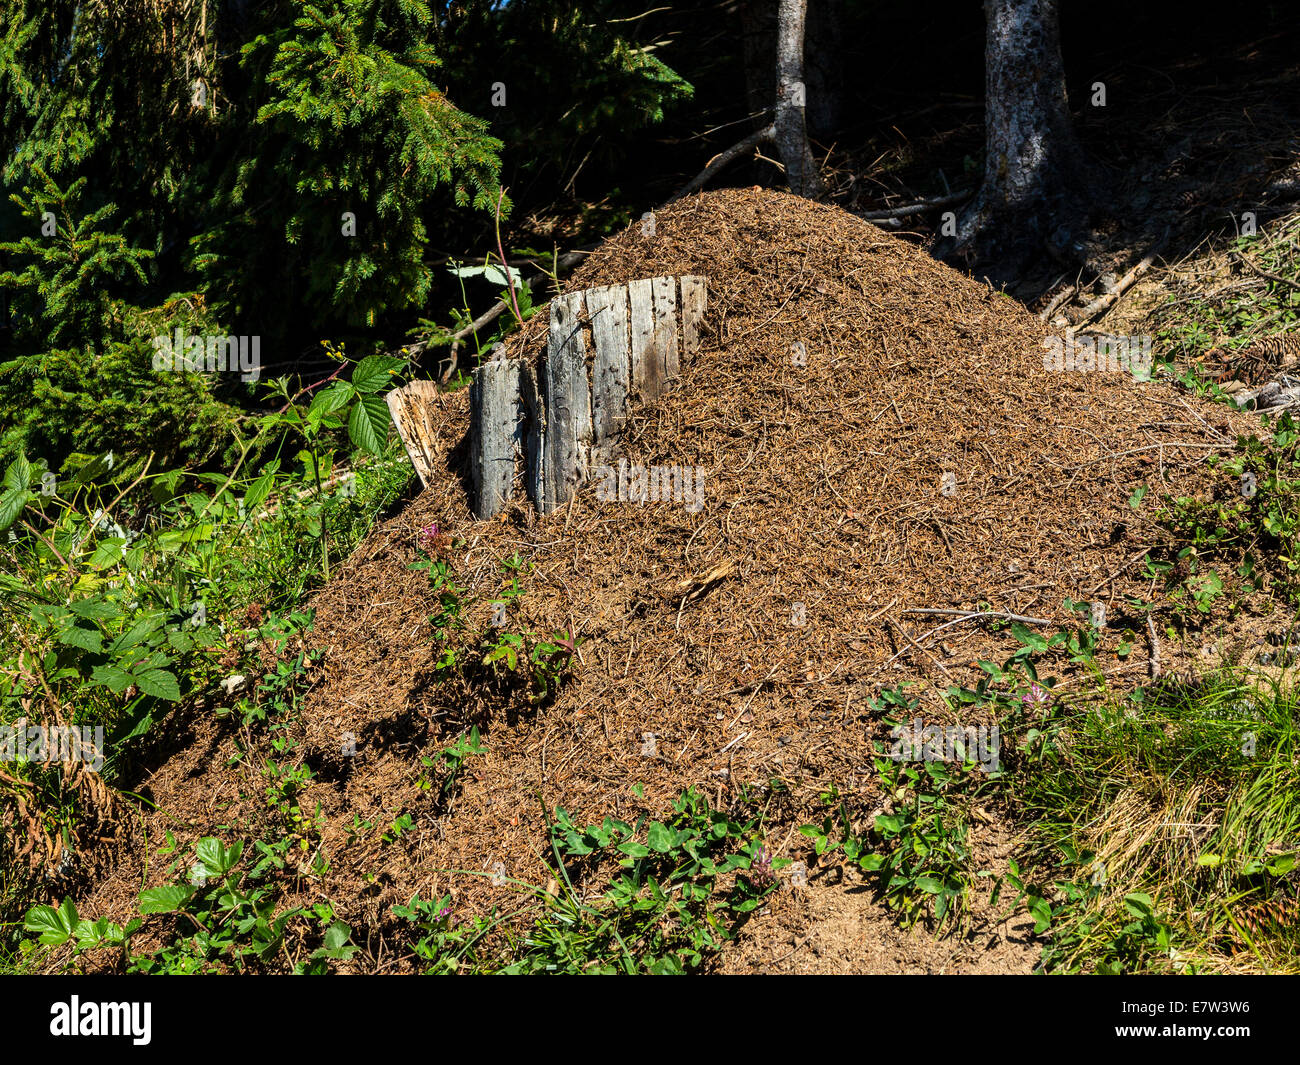 A wood ants nest (Formica rufa) built in a typical position, against a rotting stump where the sun can shine on - Stock Image